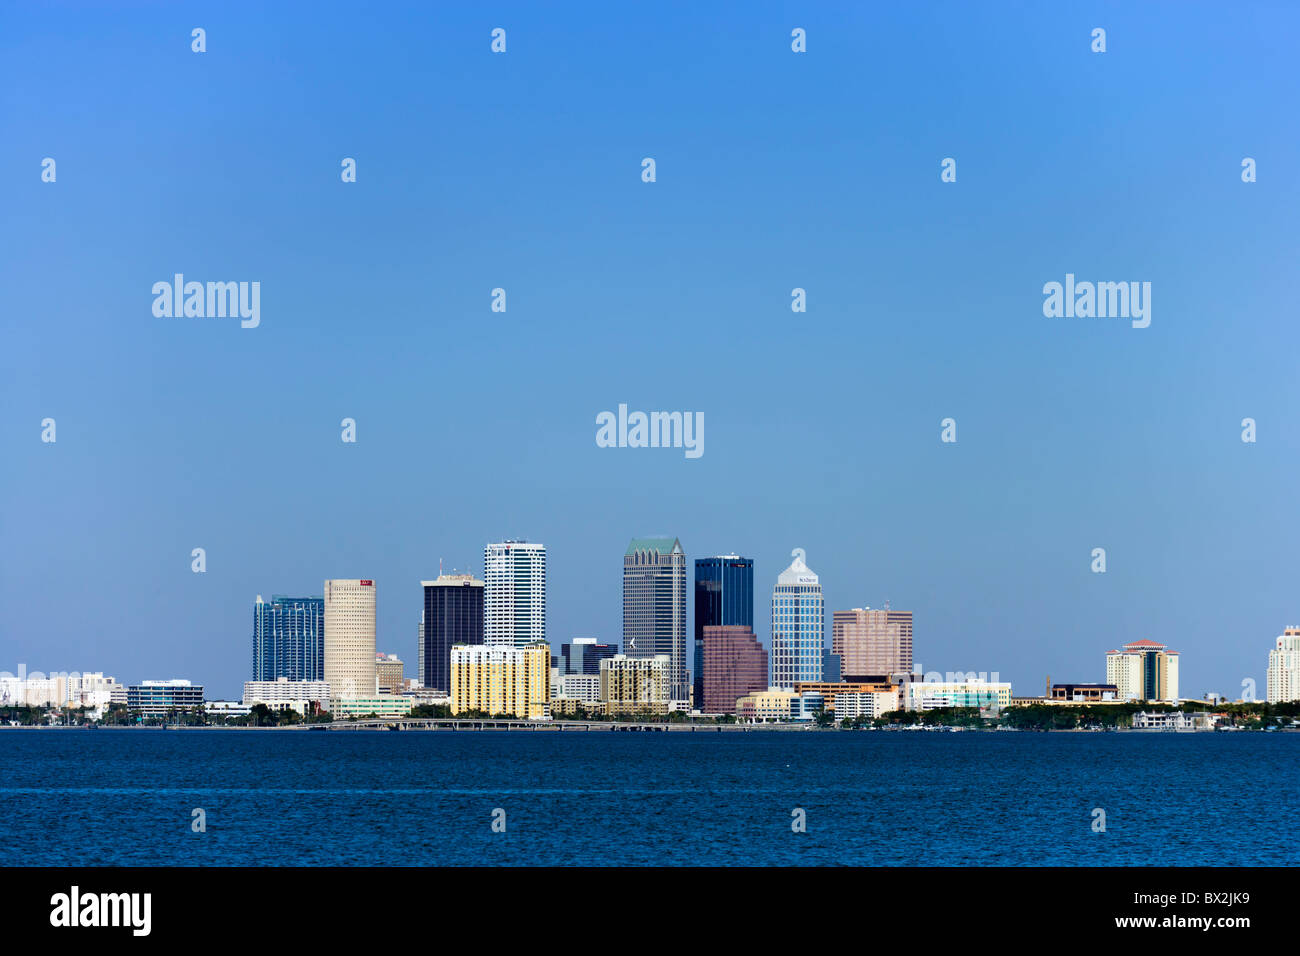 The city skyline across Tampa Bay from Ballast Point Park, Interbay Peninsula, Tampa, Florida, USA - Stock Image